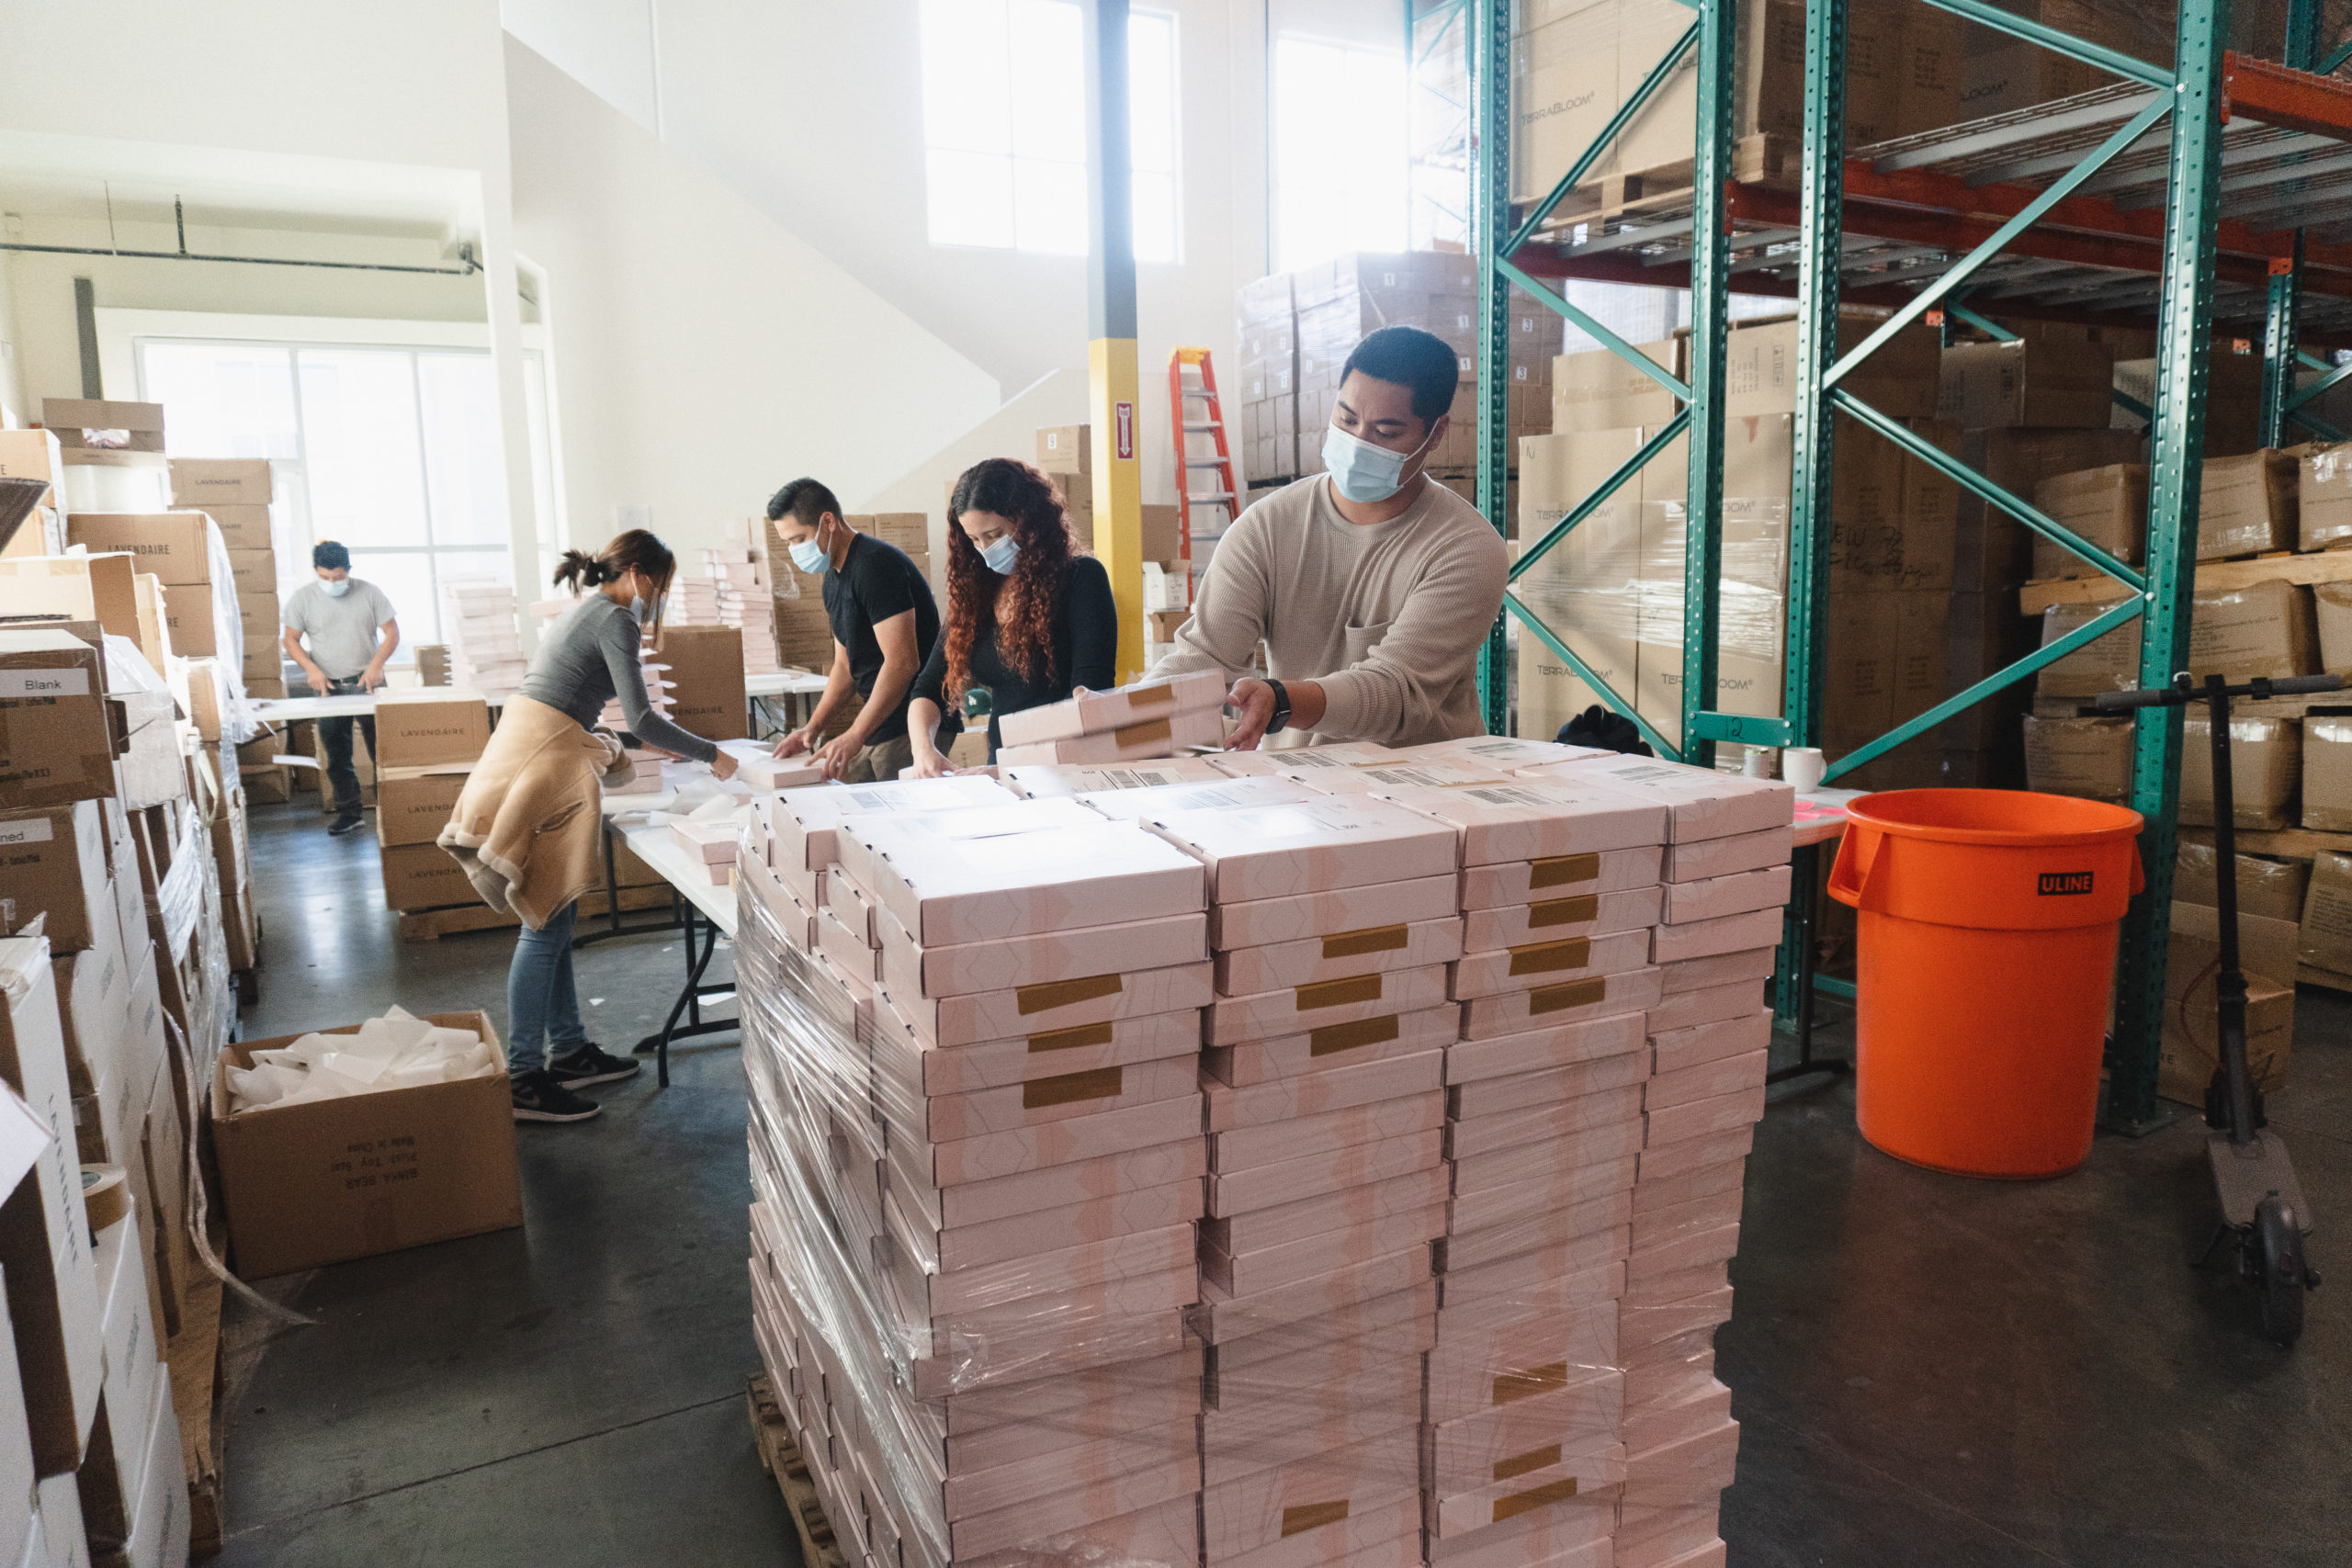 Behind the scenes: Shipping the 2021 Artist of Life Workbooks